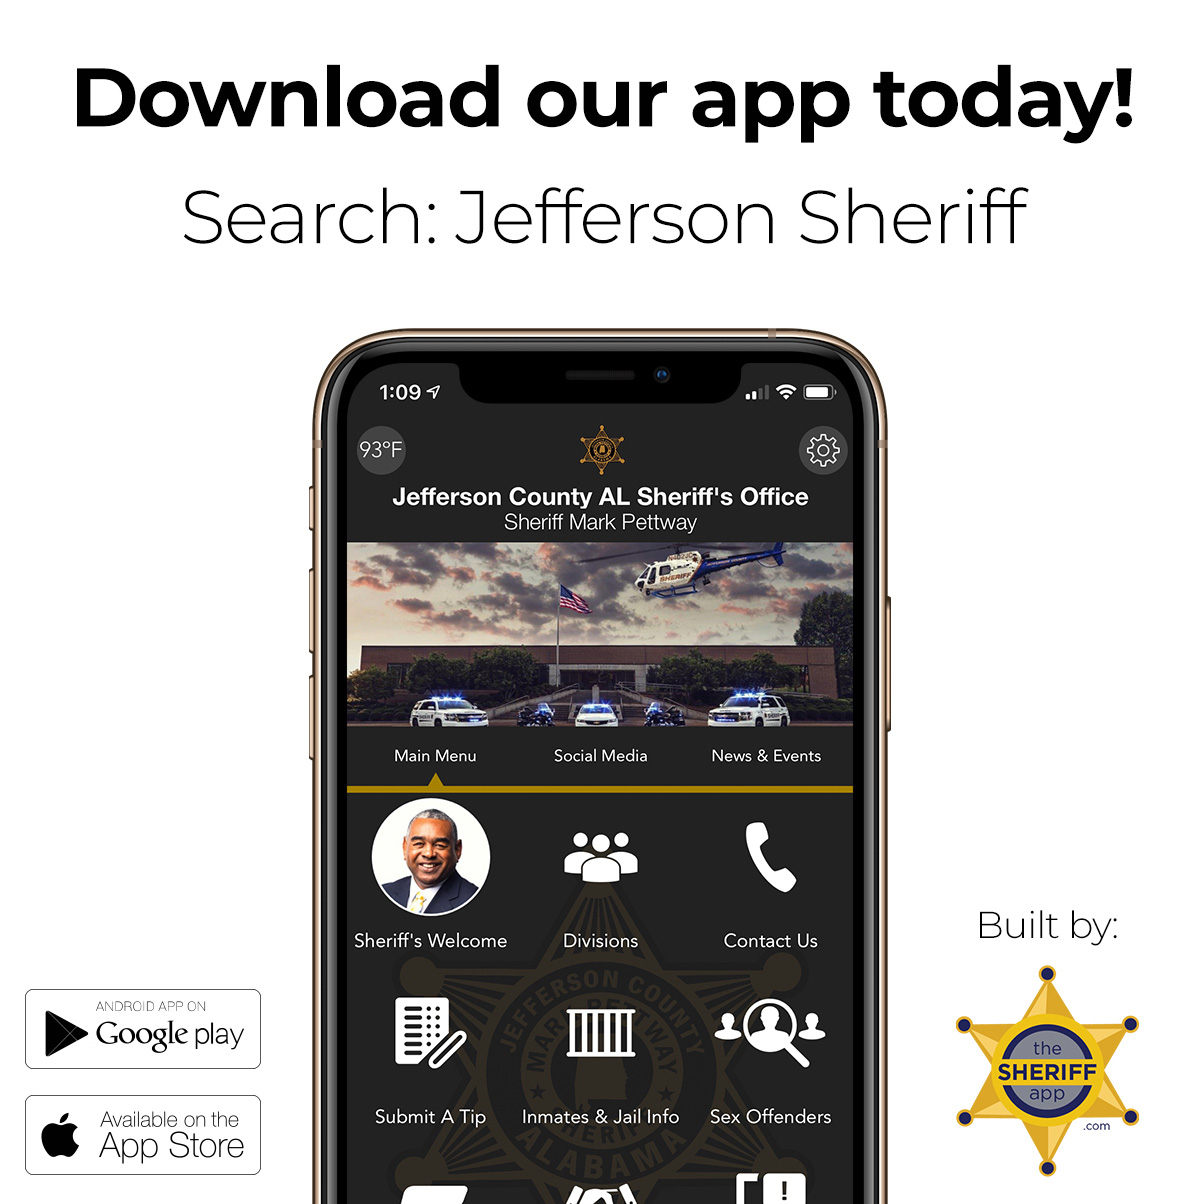 Jefferson-County-Sheriff-Department-Alabama-App-Social-Media